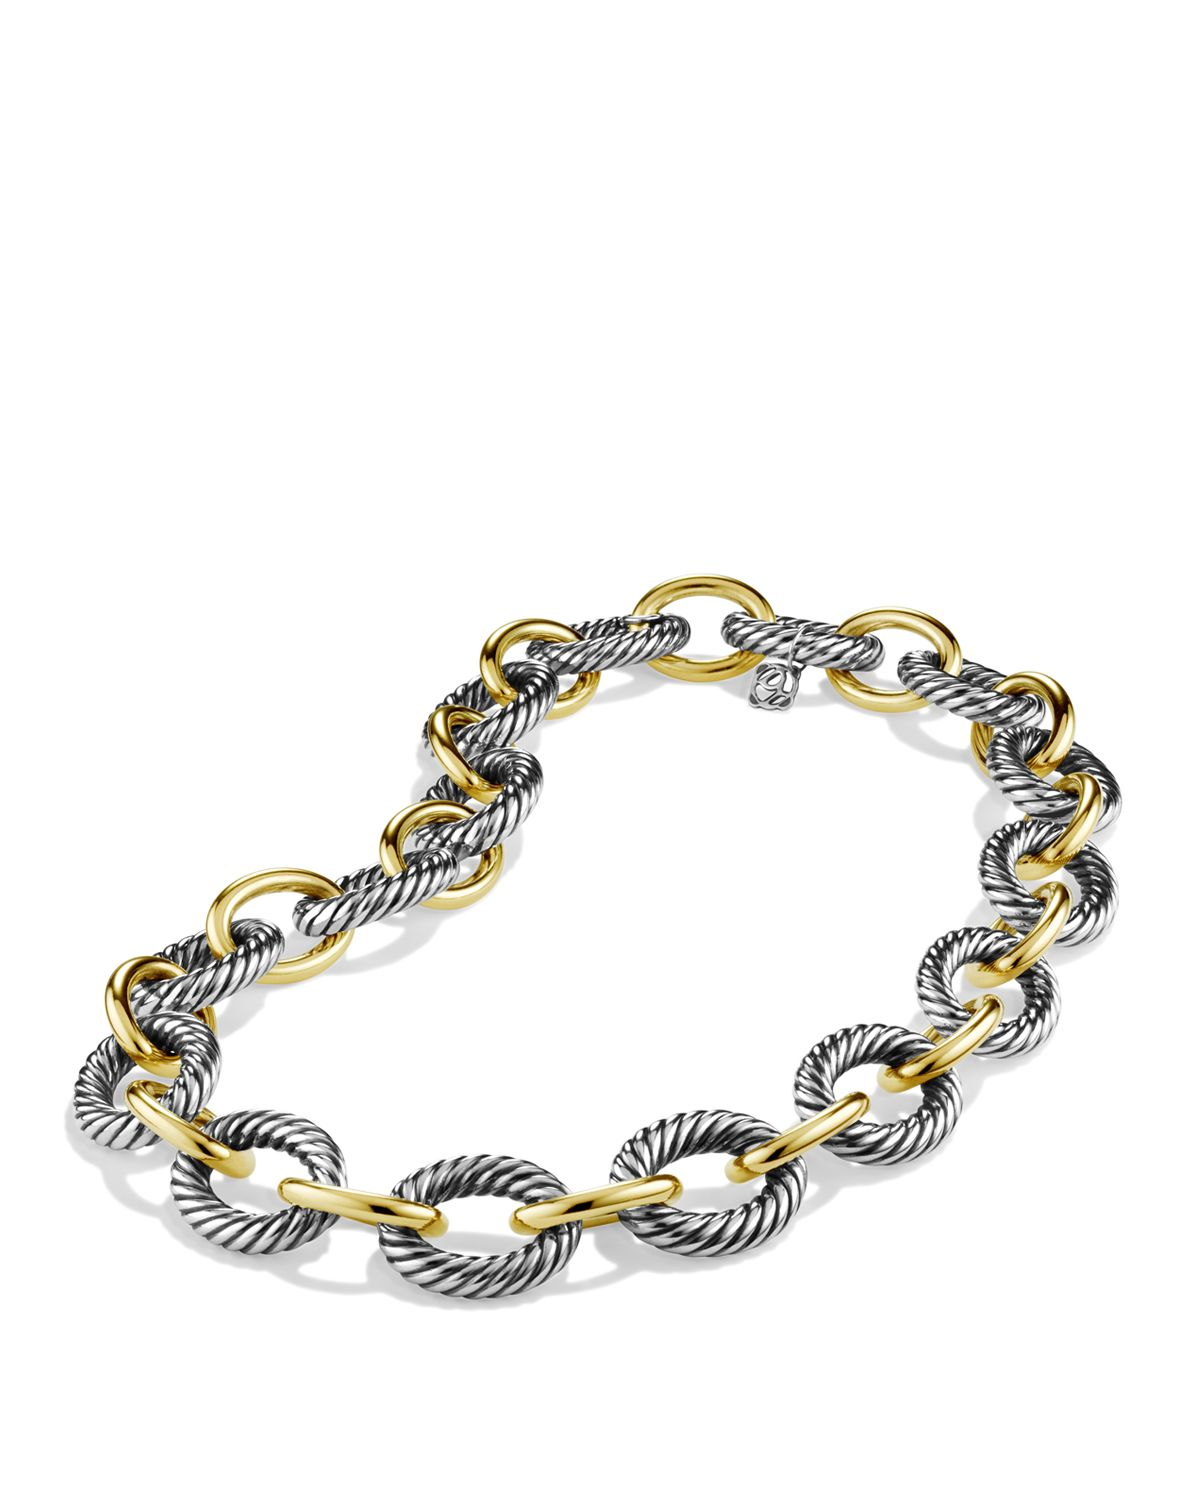 david yurman oval large link necklace with gold 16